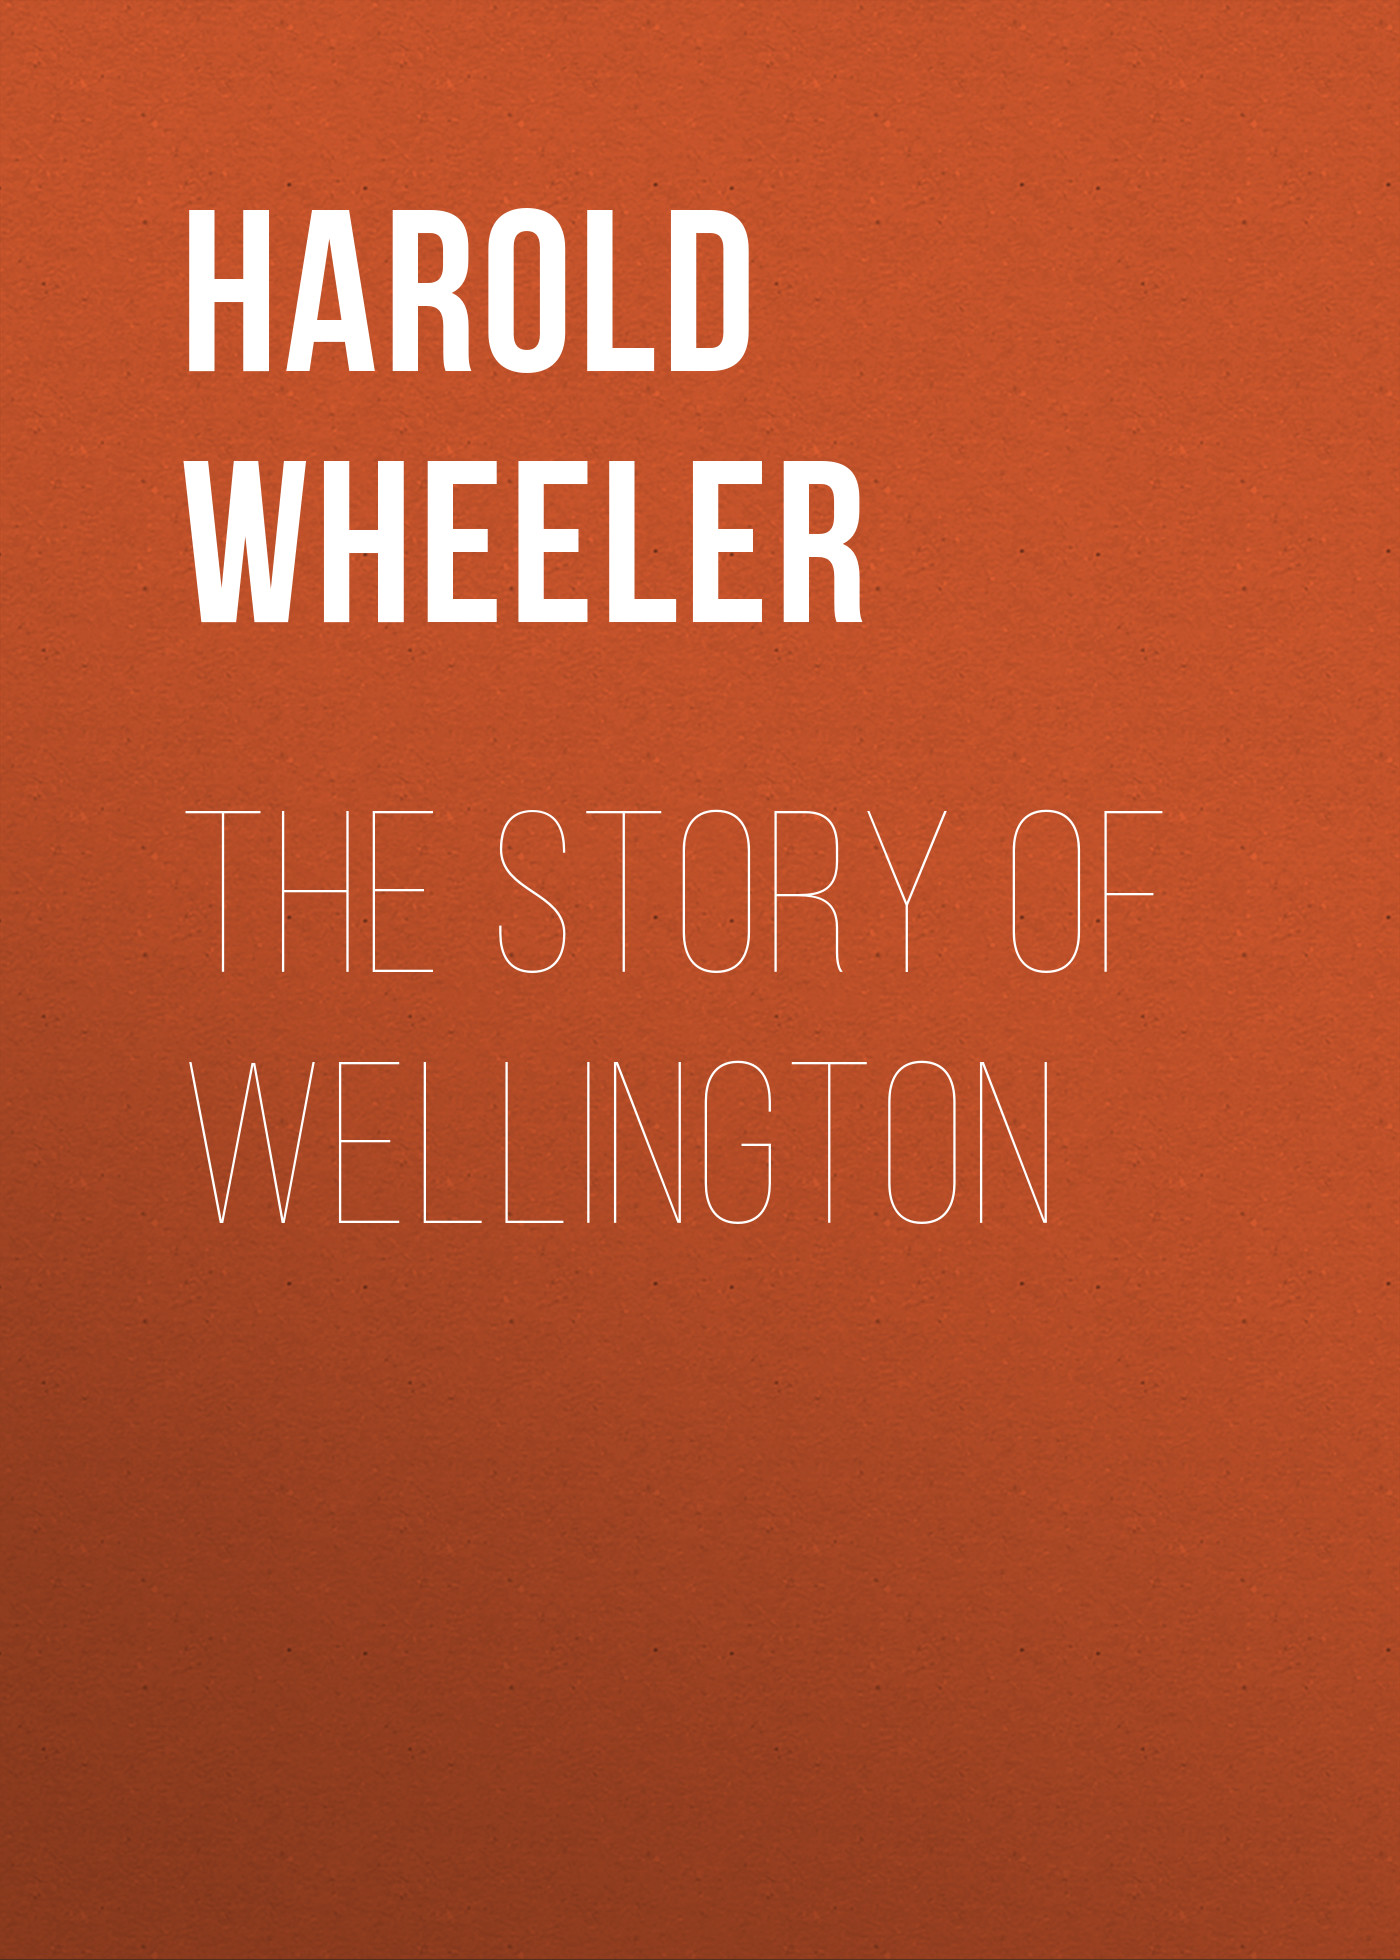 Harold Wheeler The Story of Wellington harold wheeler the story of napoleon